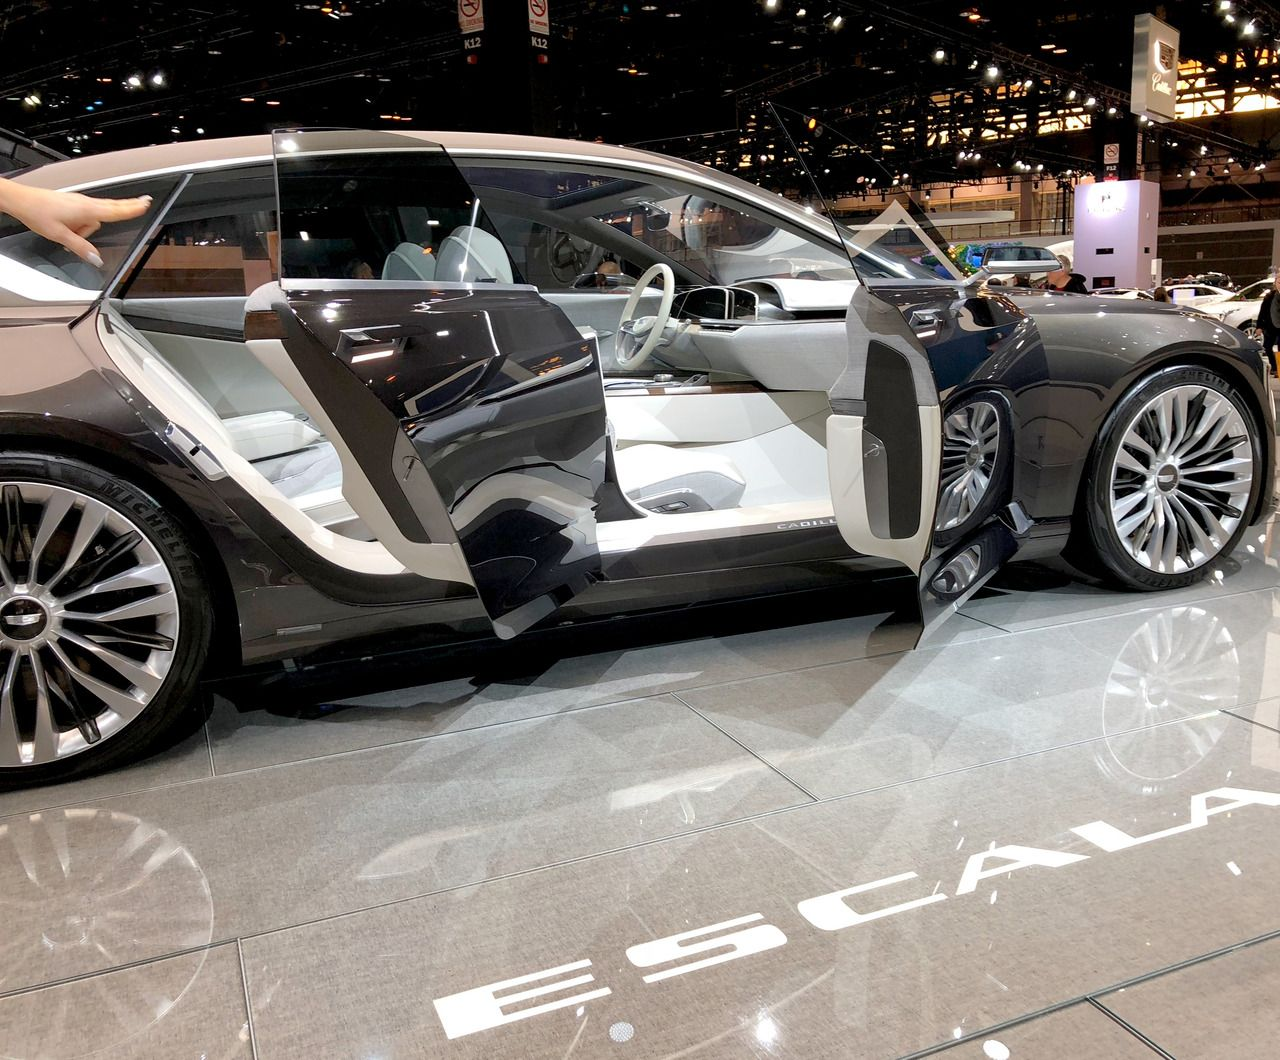 2021 Cadillac Ct6 Build Your Own - Car Wallpaper